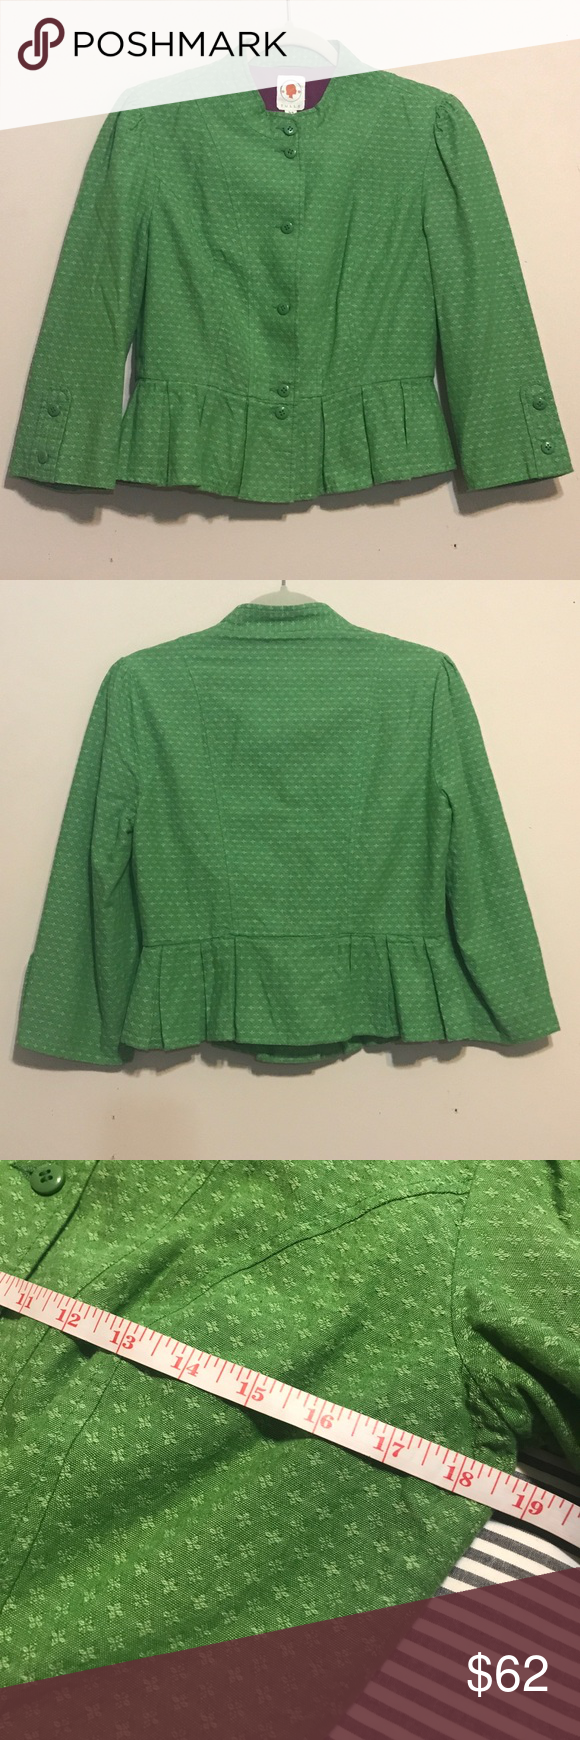 Anthropologie green jacket Tulle green peplum jacket.  Fully lined.  EUC. Bundle for best deals. Anthropologie Jackets & Coats Blazers